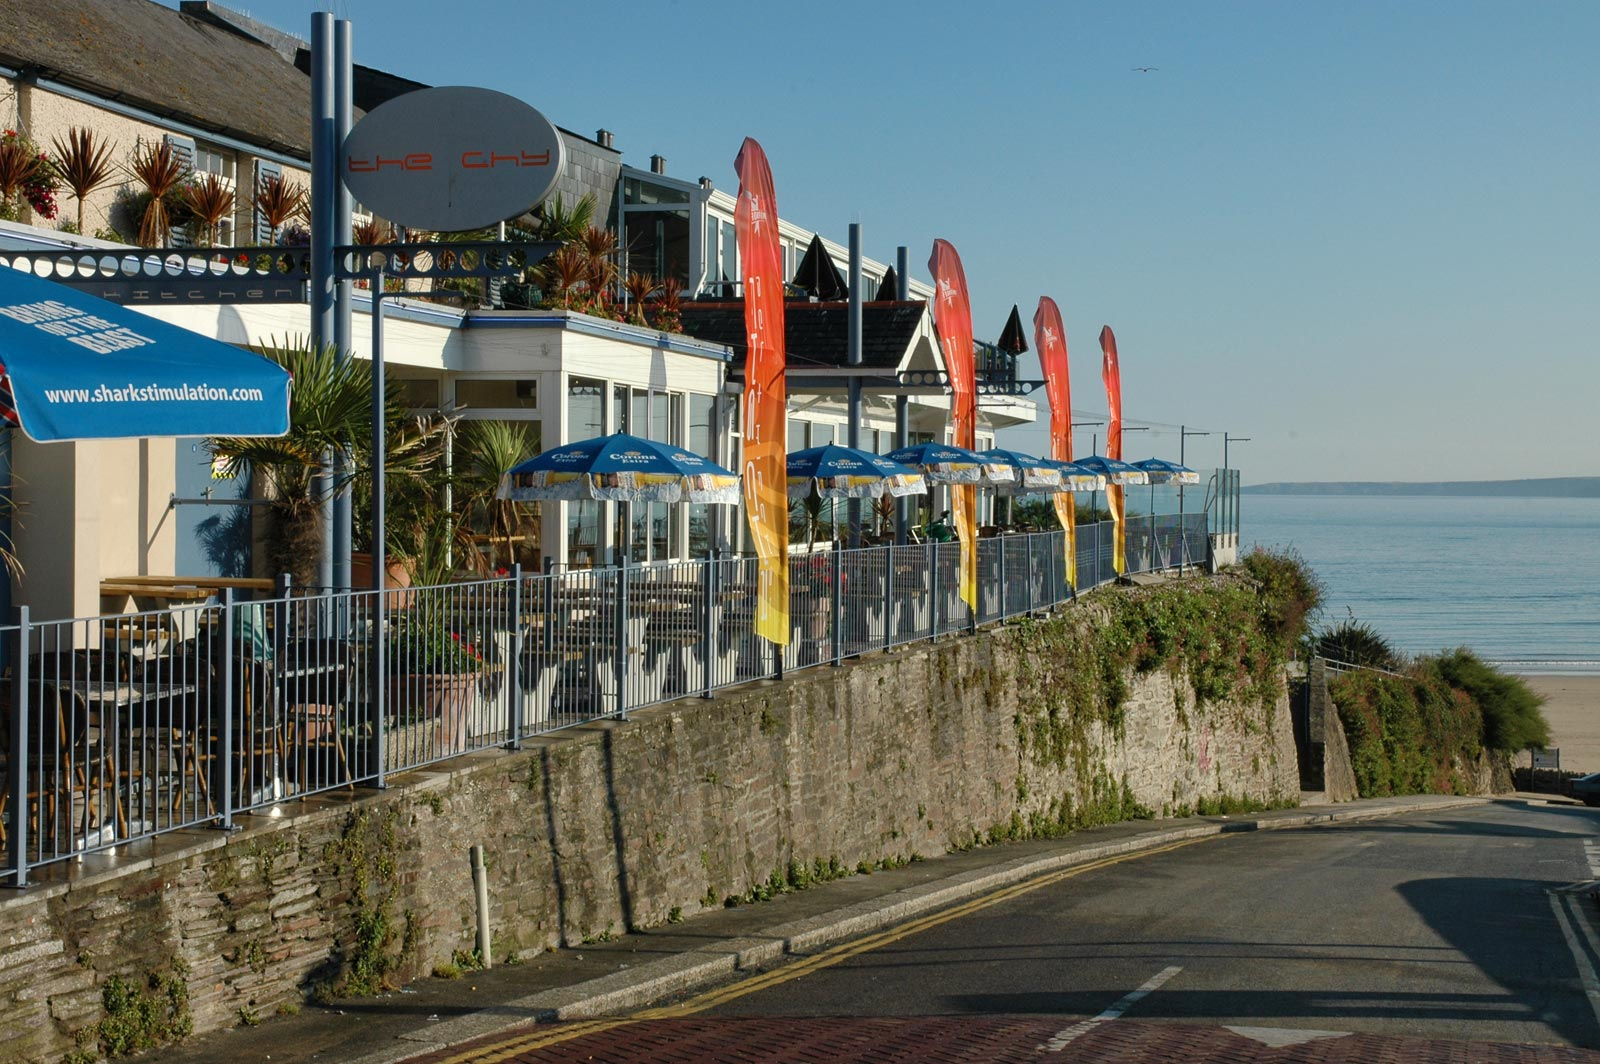 Indian Restaurants In Newquay Town